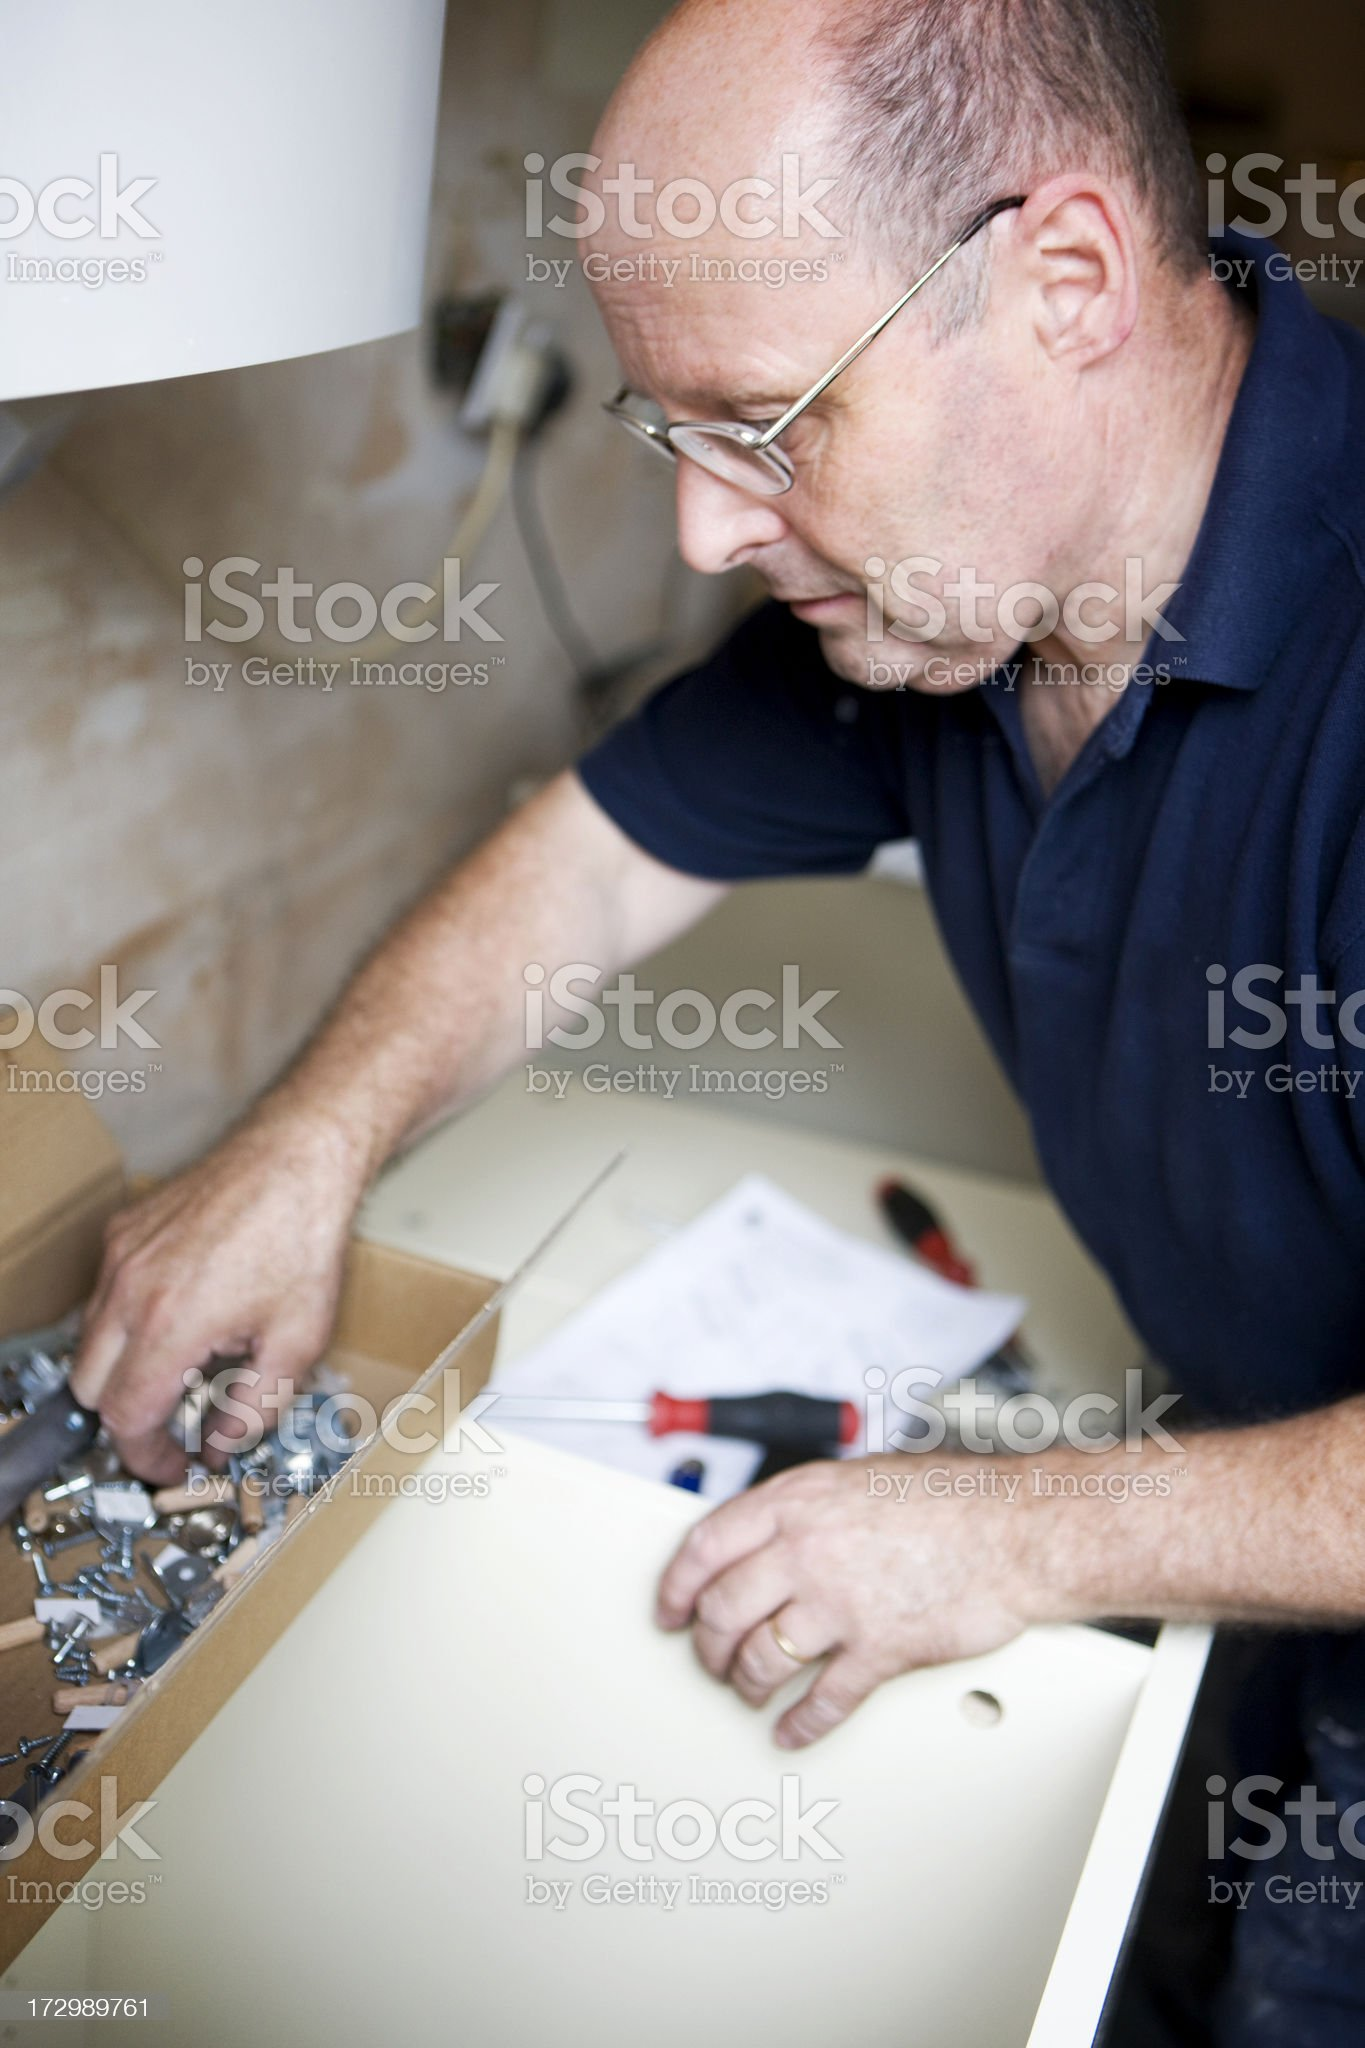 finding the right tools royalty-free stock photo